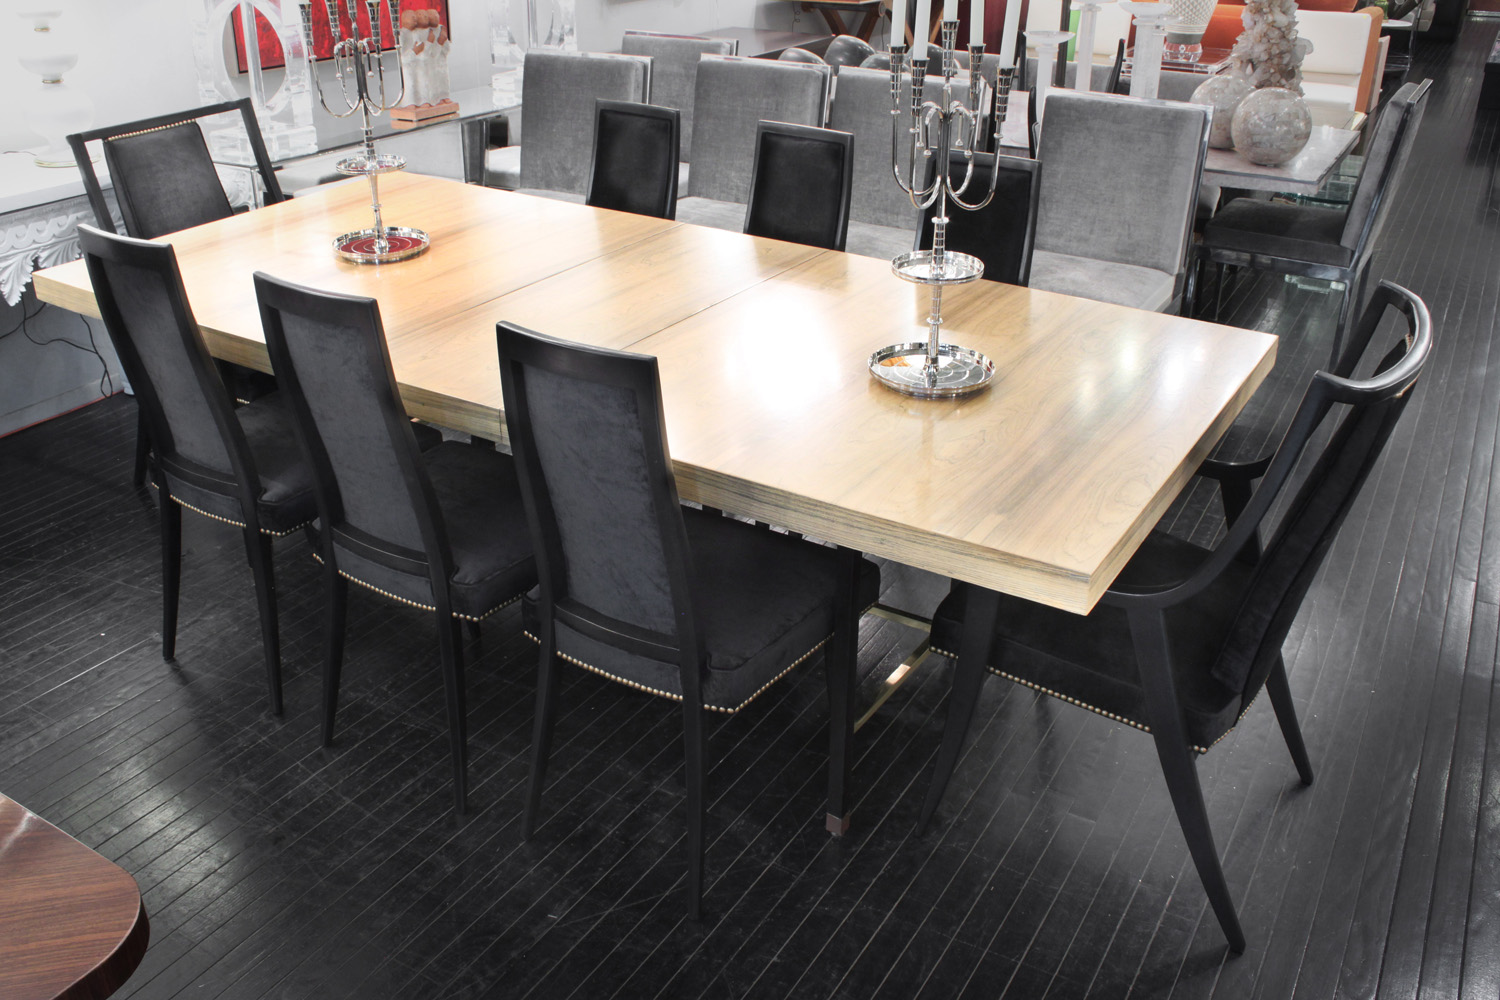 Probber 180 set 8 Classic 2 arms diningchairs150 detail10 hires.jpg